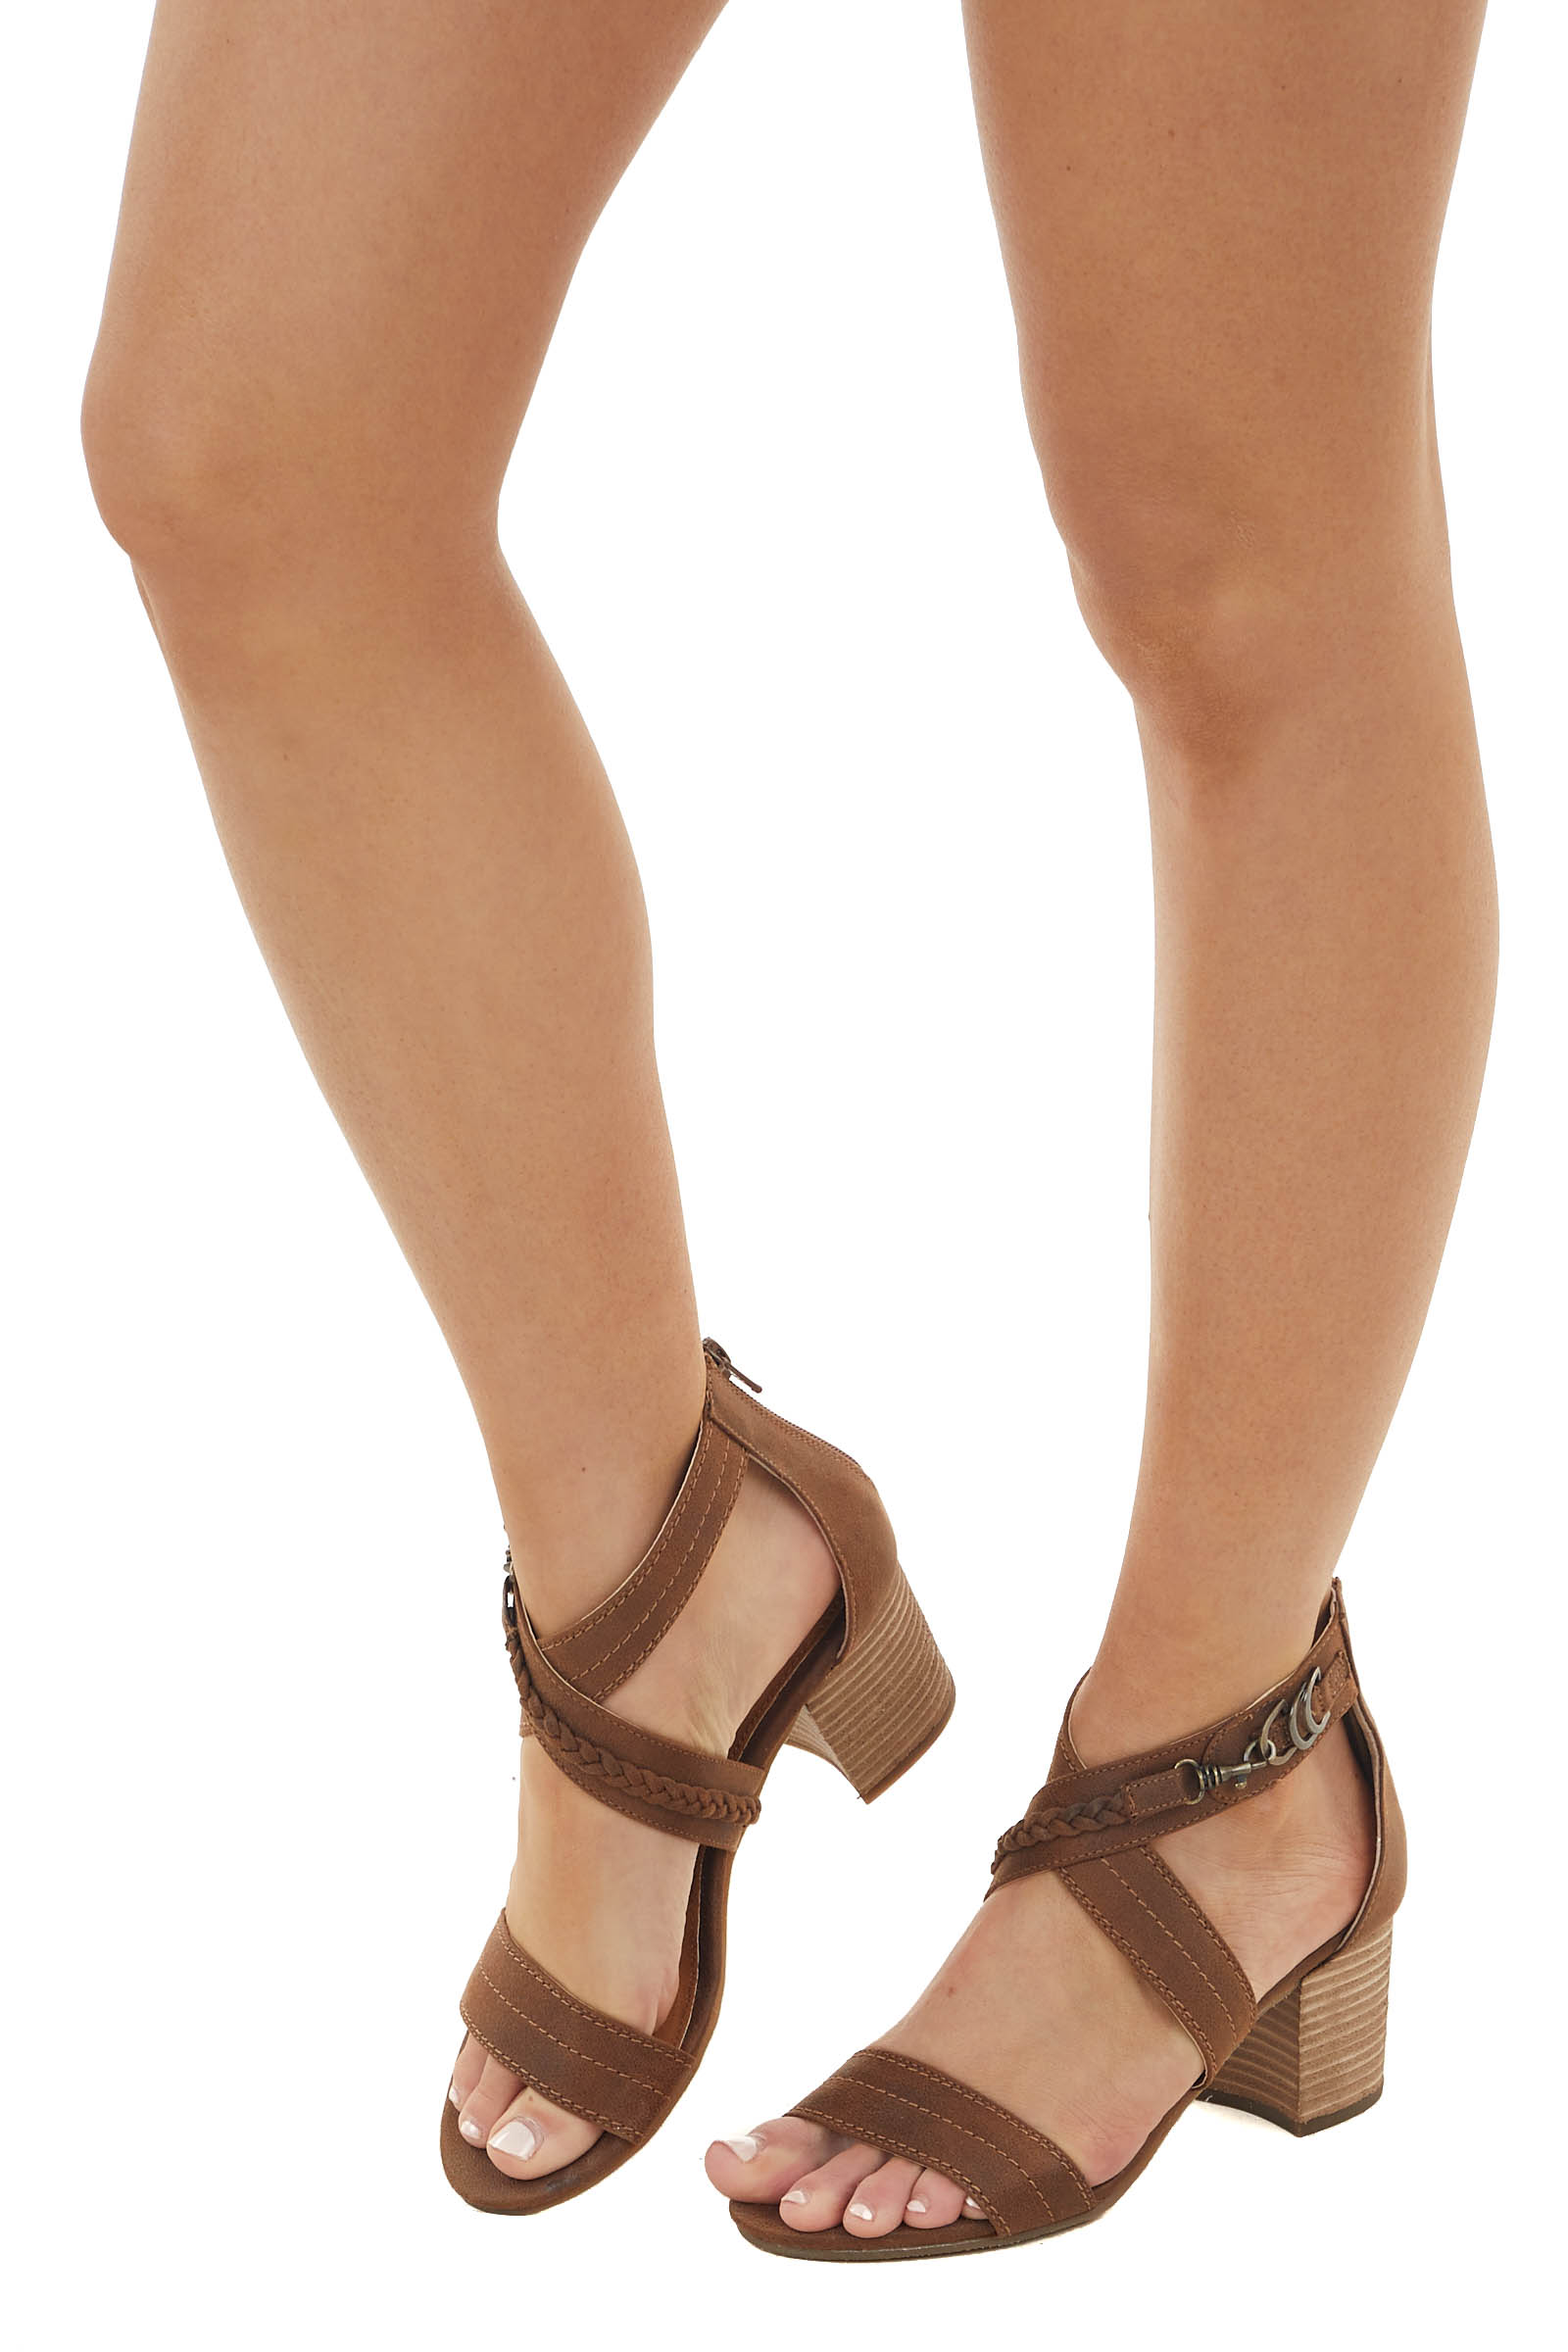 Walnut Criss Cross Strap Block Heel with Braided Detail